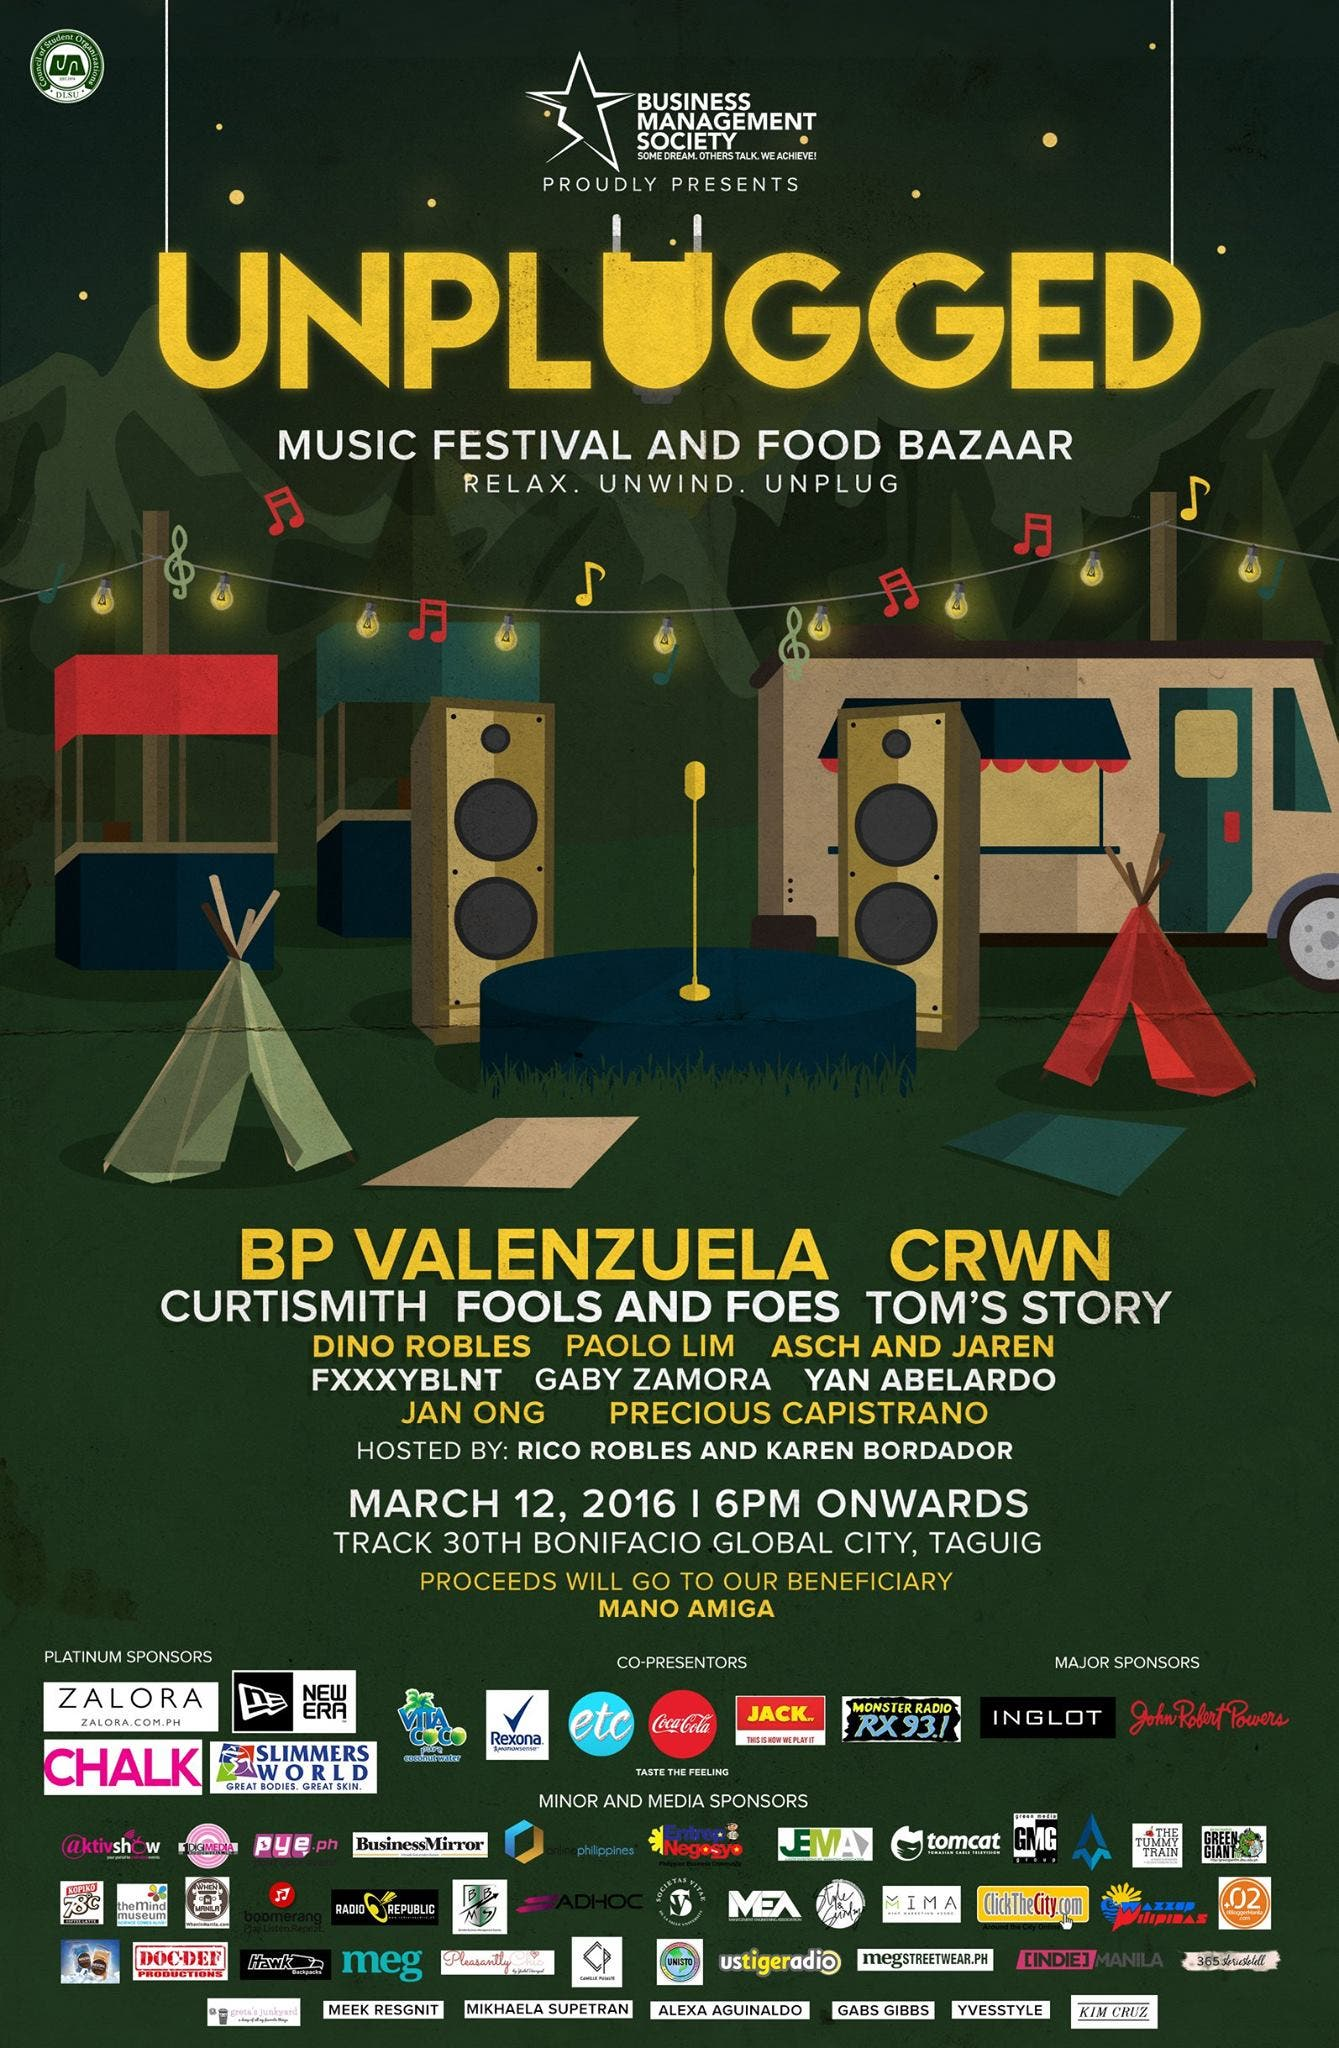 Unplugged: Indie Music Festival and Food Bazaar BGC